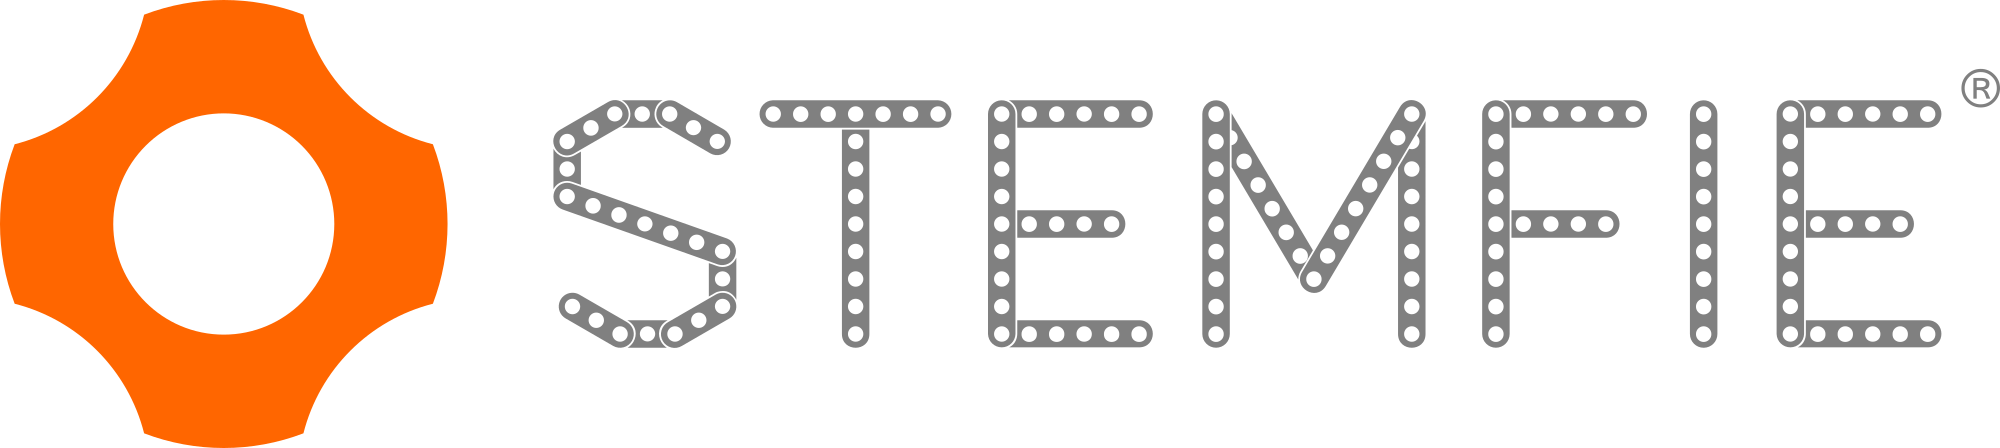 Download the STEMFIE logo and press kit